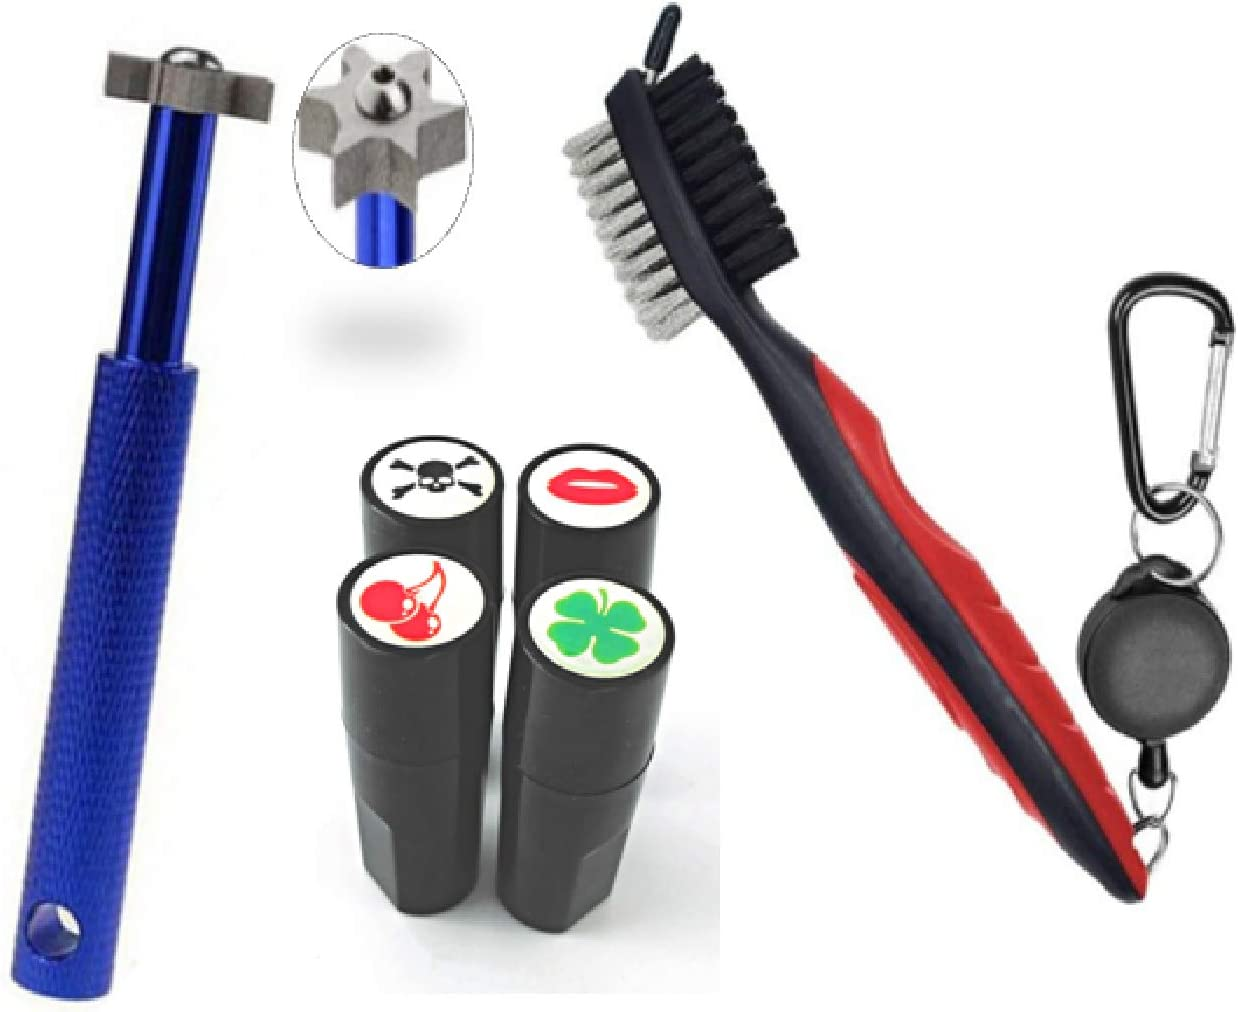 Finish It! On-Course Golf Accessories for Men & Women – Golf Brush and Groove Cleaner with Bonus Golf Ball Stamp (One Stamp per Bundle with Random Design) – Thoughtful Golf Gifts!